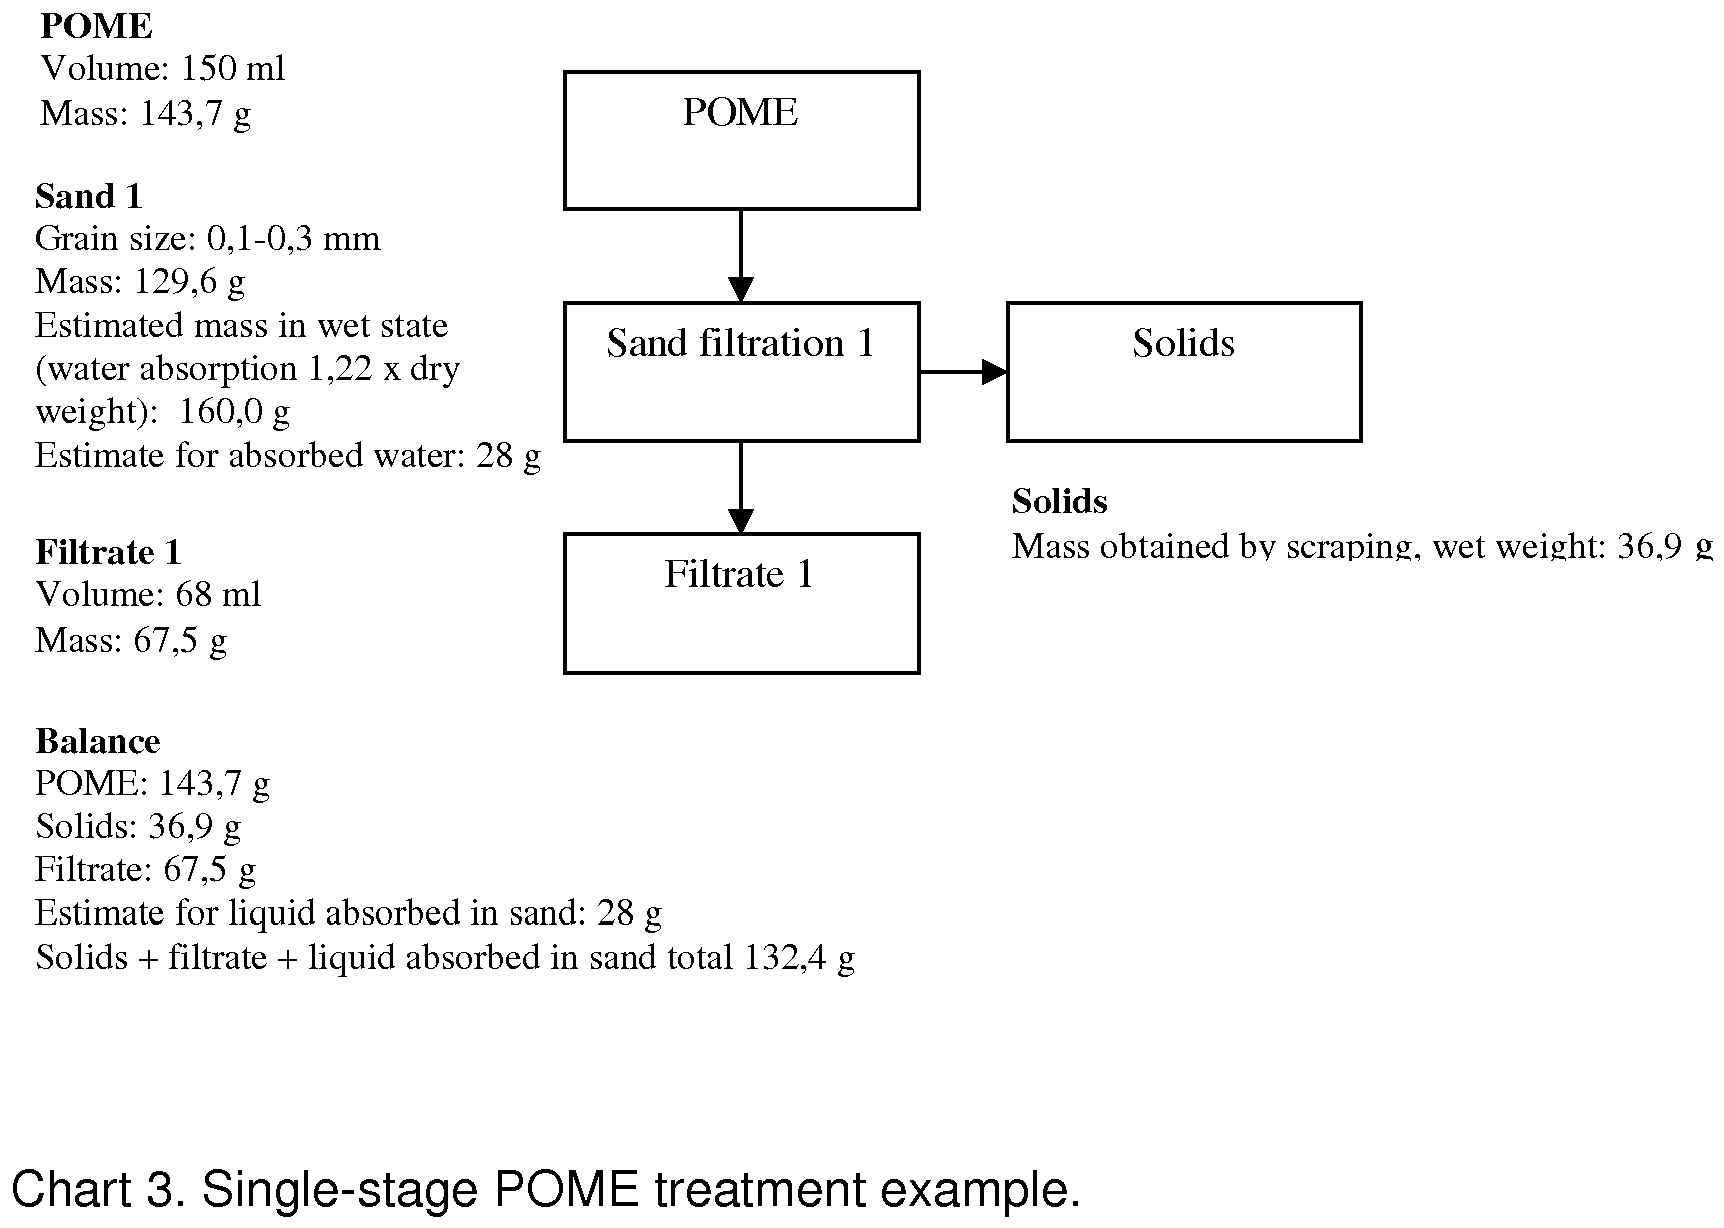 Ep2489276a1 oil recovery method google patents pome filtration was based on the single stage sand filtration of pome the obtained fractions being solids and filtrate as shown in the attached chart nvjuhfo Image collections